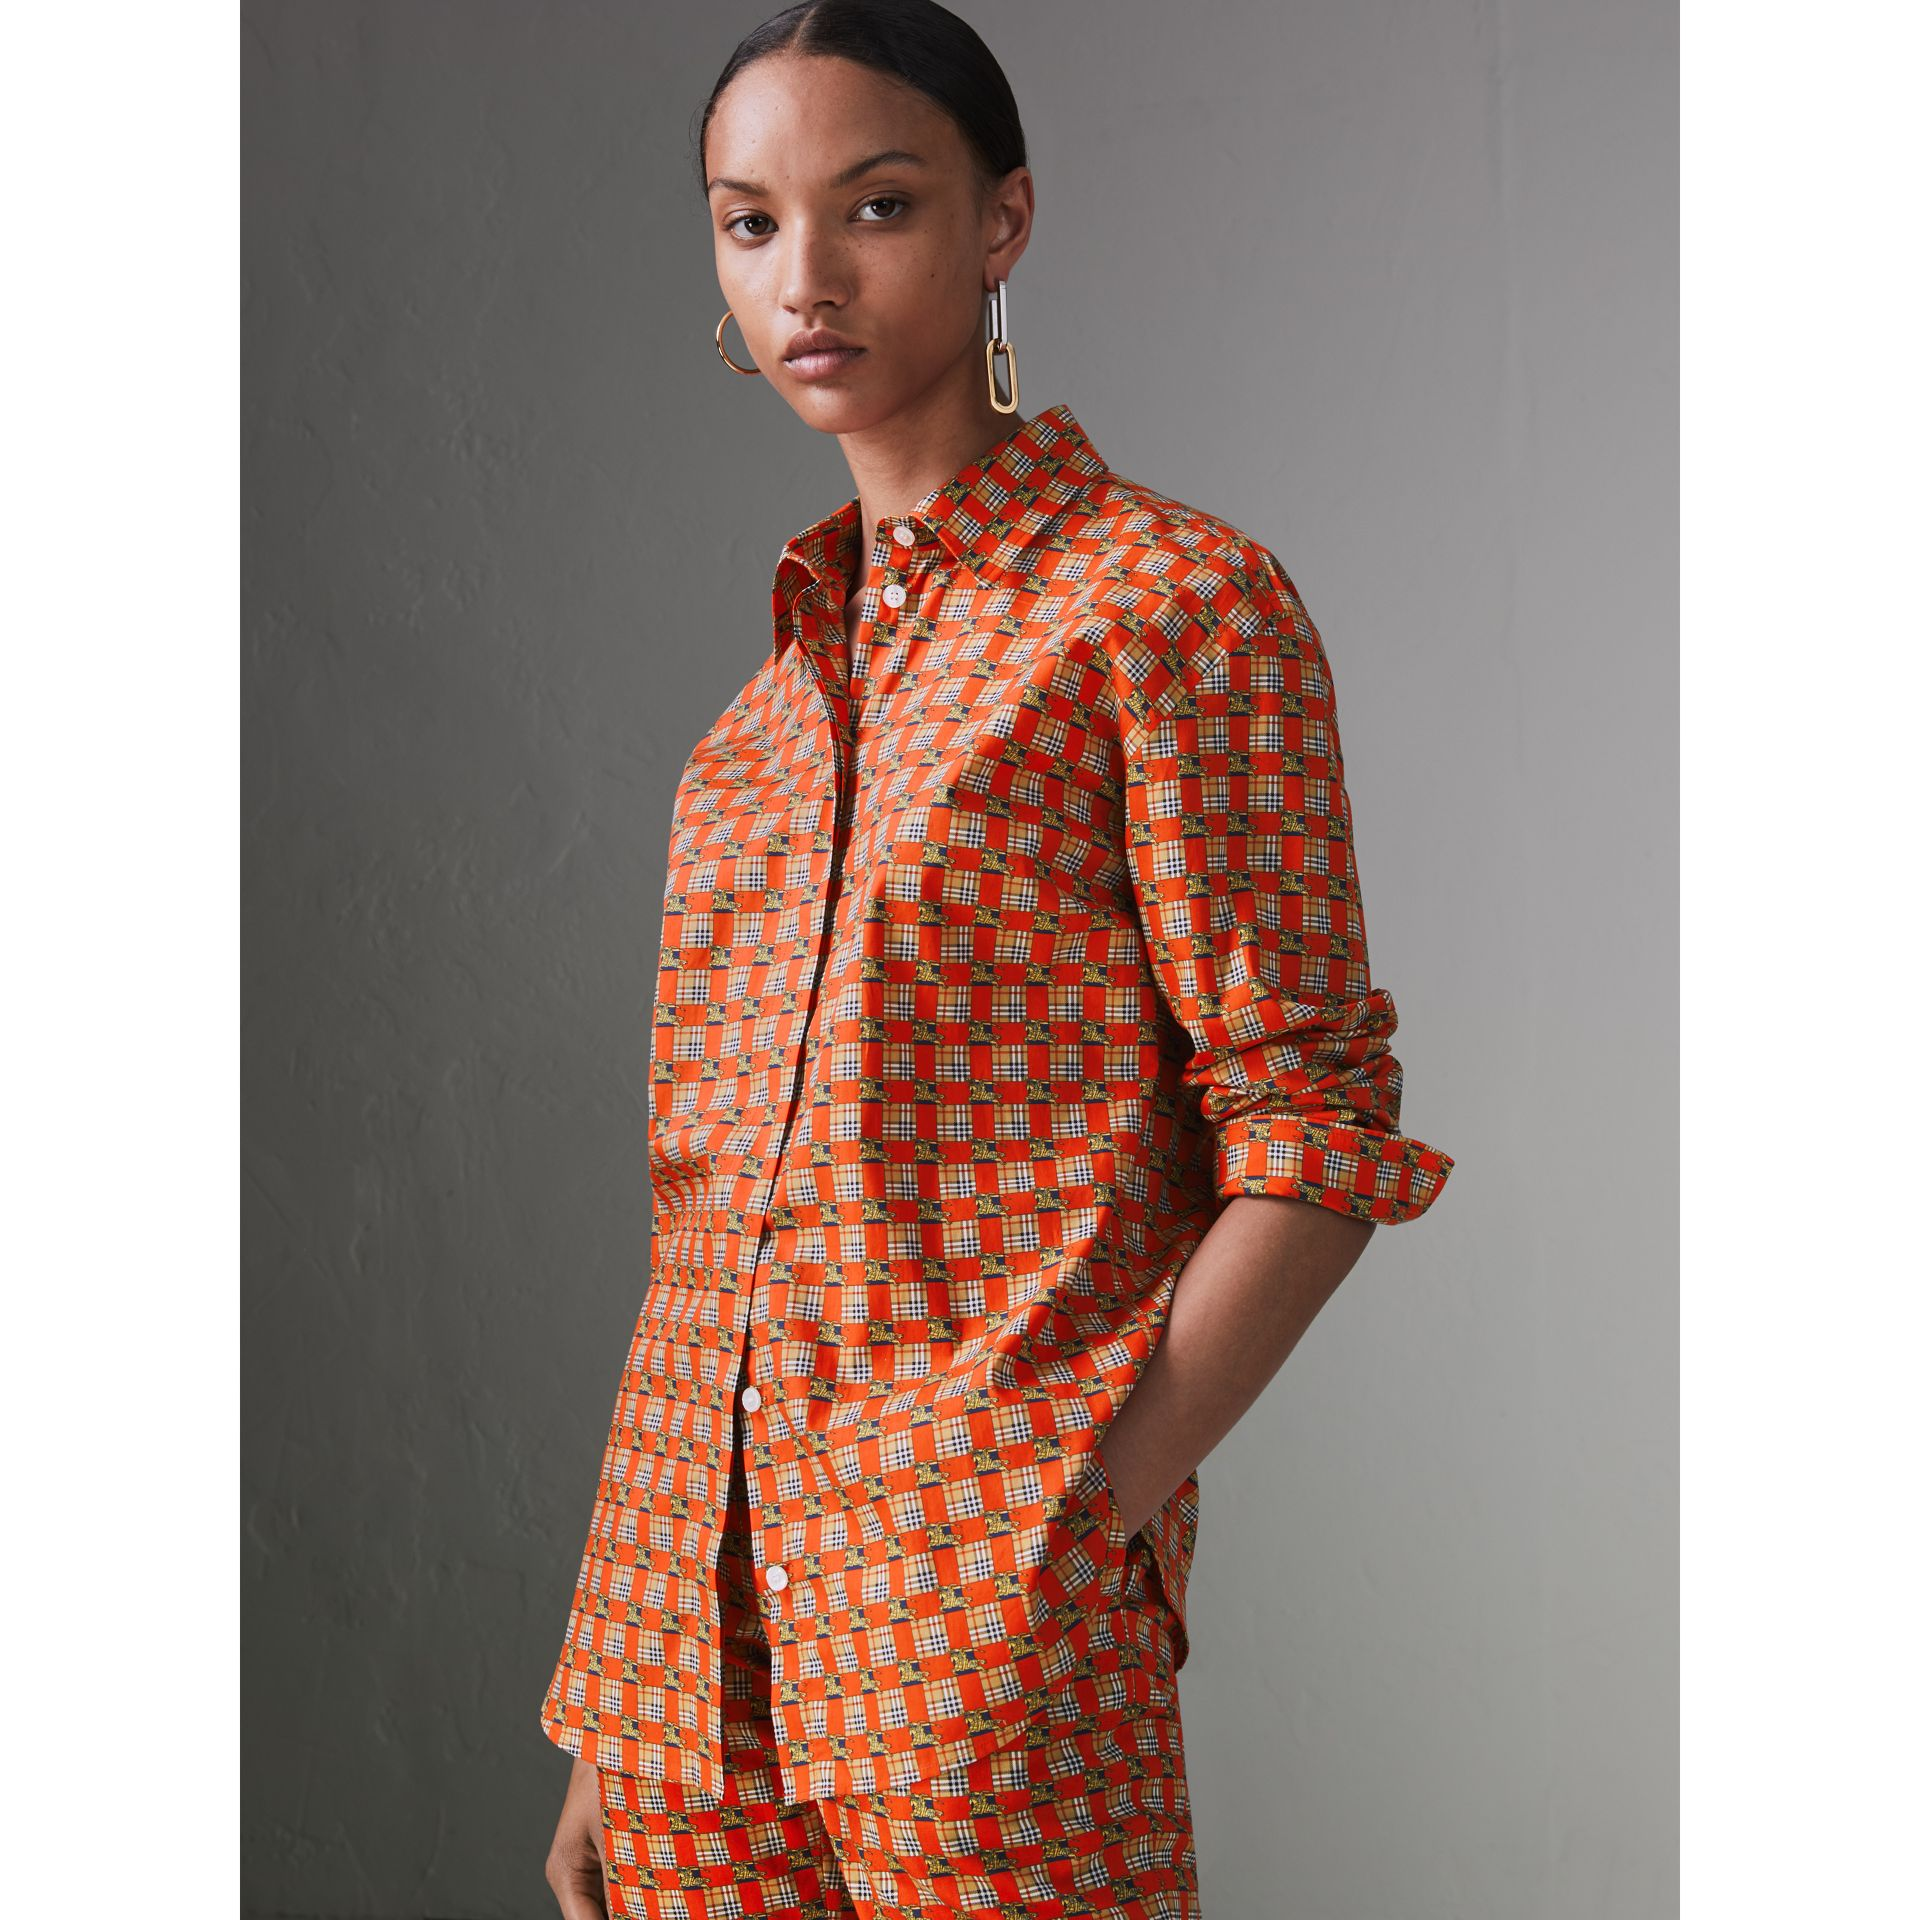 Tiled Archive Print Cotton Shirt in Bright Red - Women | Burberry Australia - gallery image 5